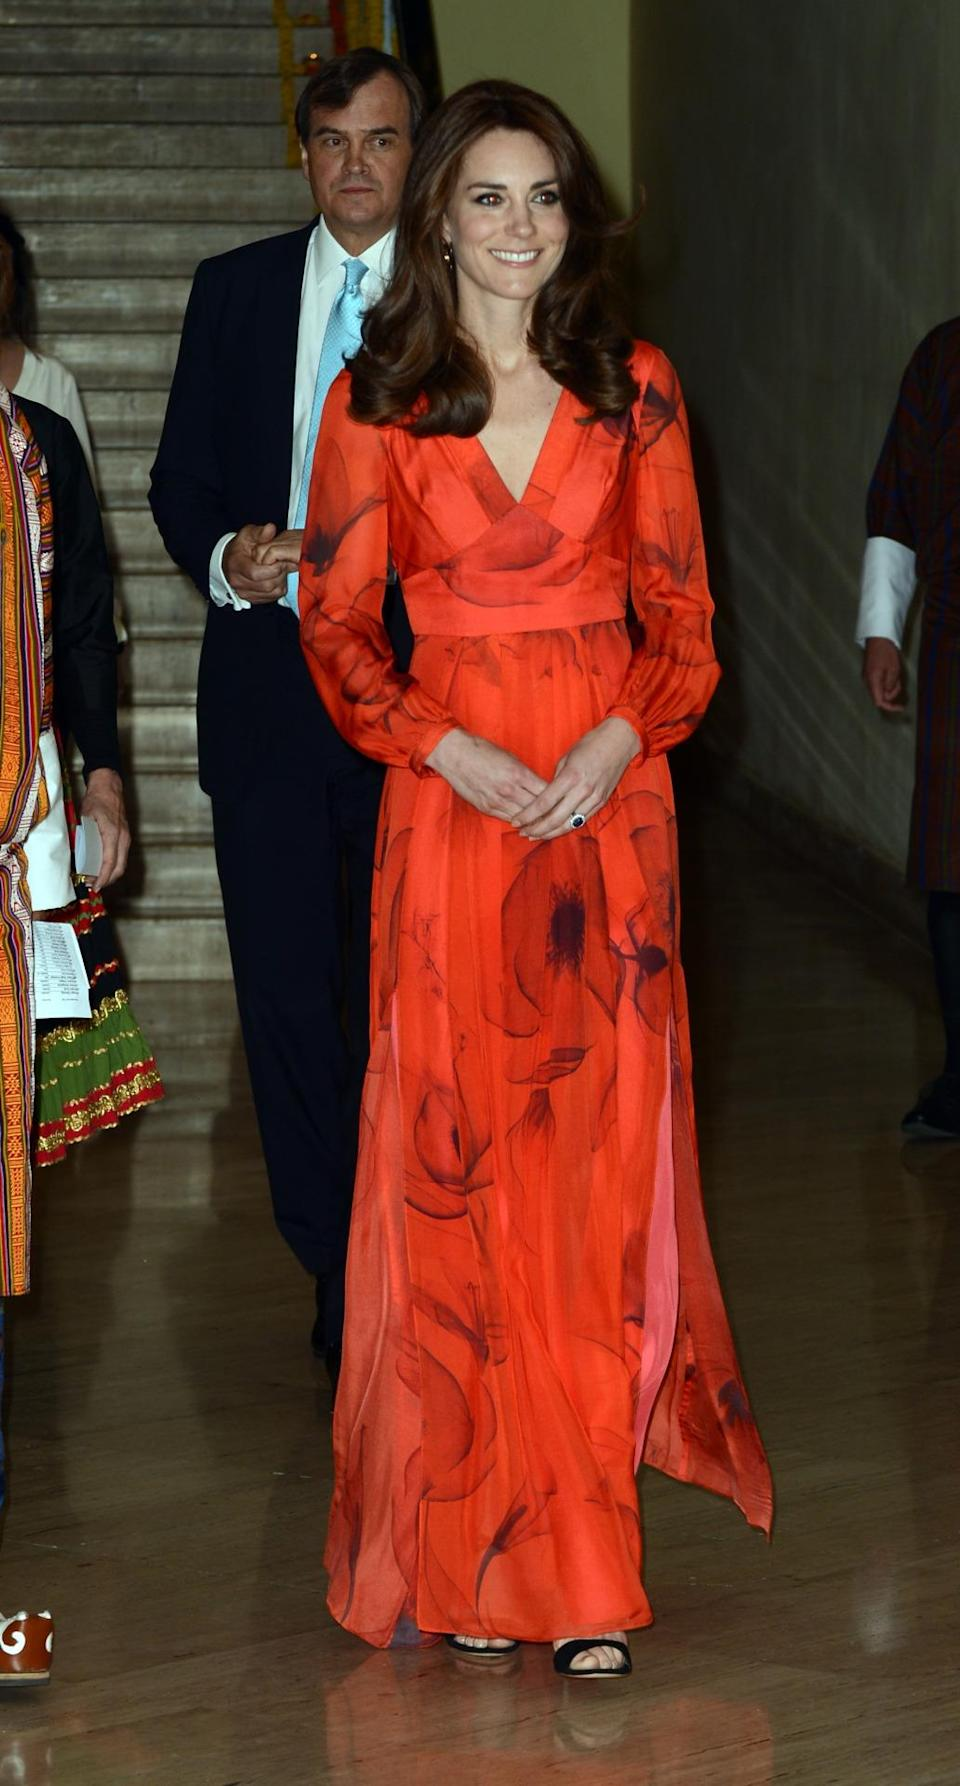 <p>Kate looked exquisite in a red chiffon gown by Beulah London. Complete with an abstract poppy print, the Duchess accessorised with Gianvito Rossi sandals. </p><p><i>[Photo: PA]</i></p>